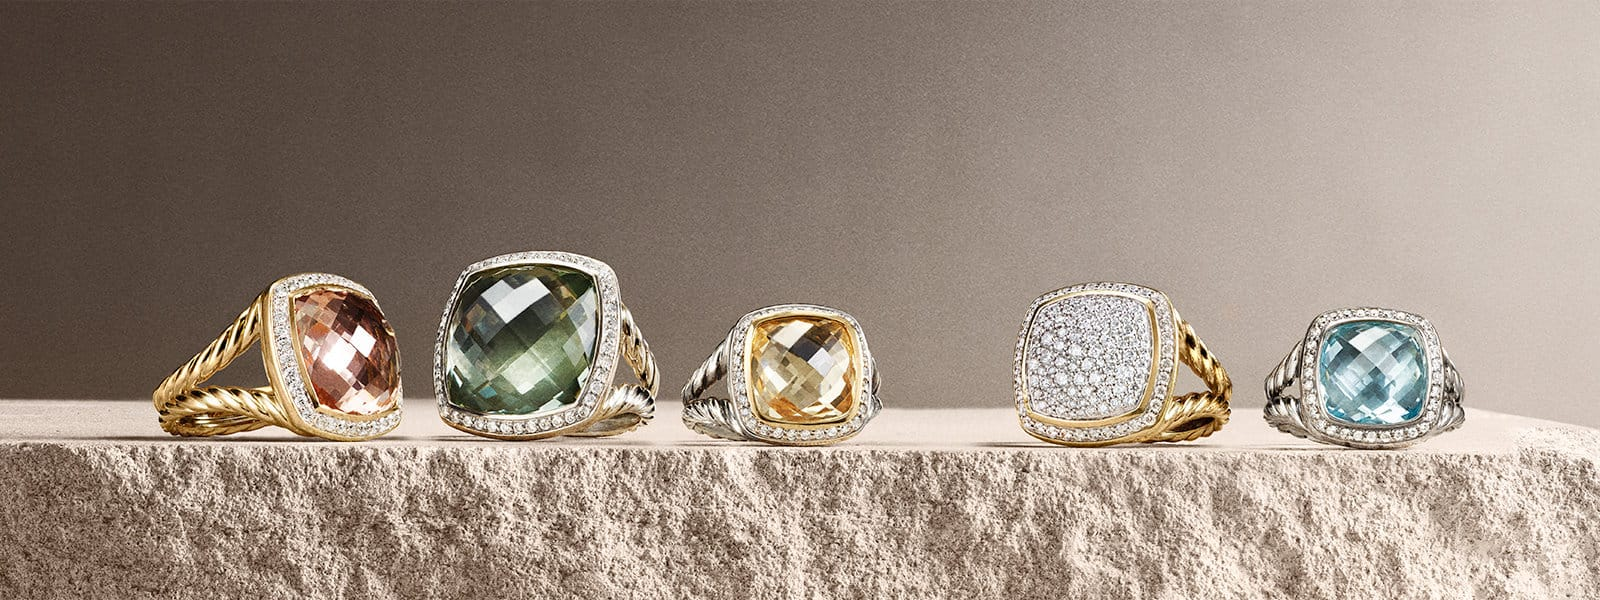 Albion® rings in 18K yellow gold and sterling silver with pavé diamonds and colored gemstones on a stone.